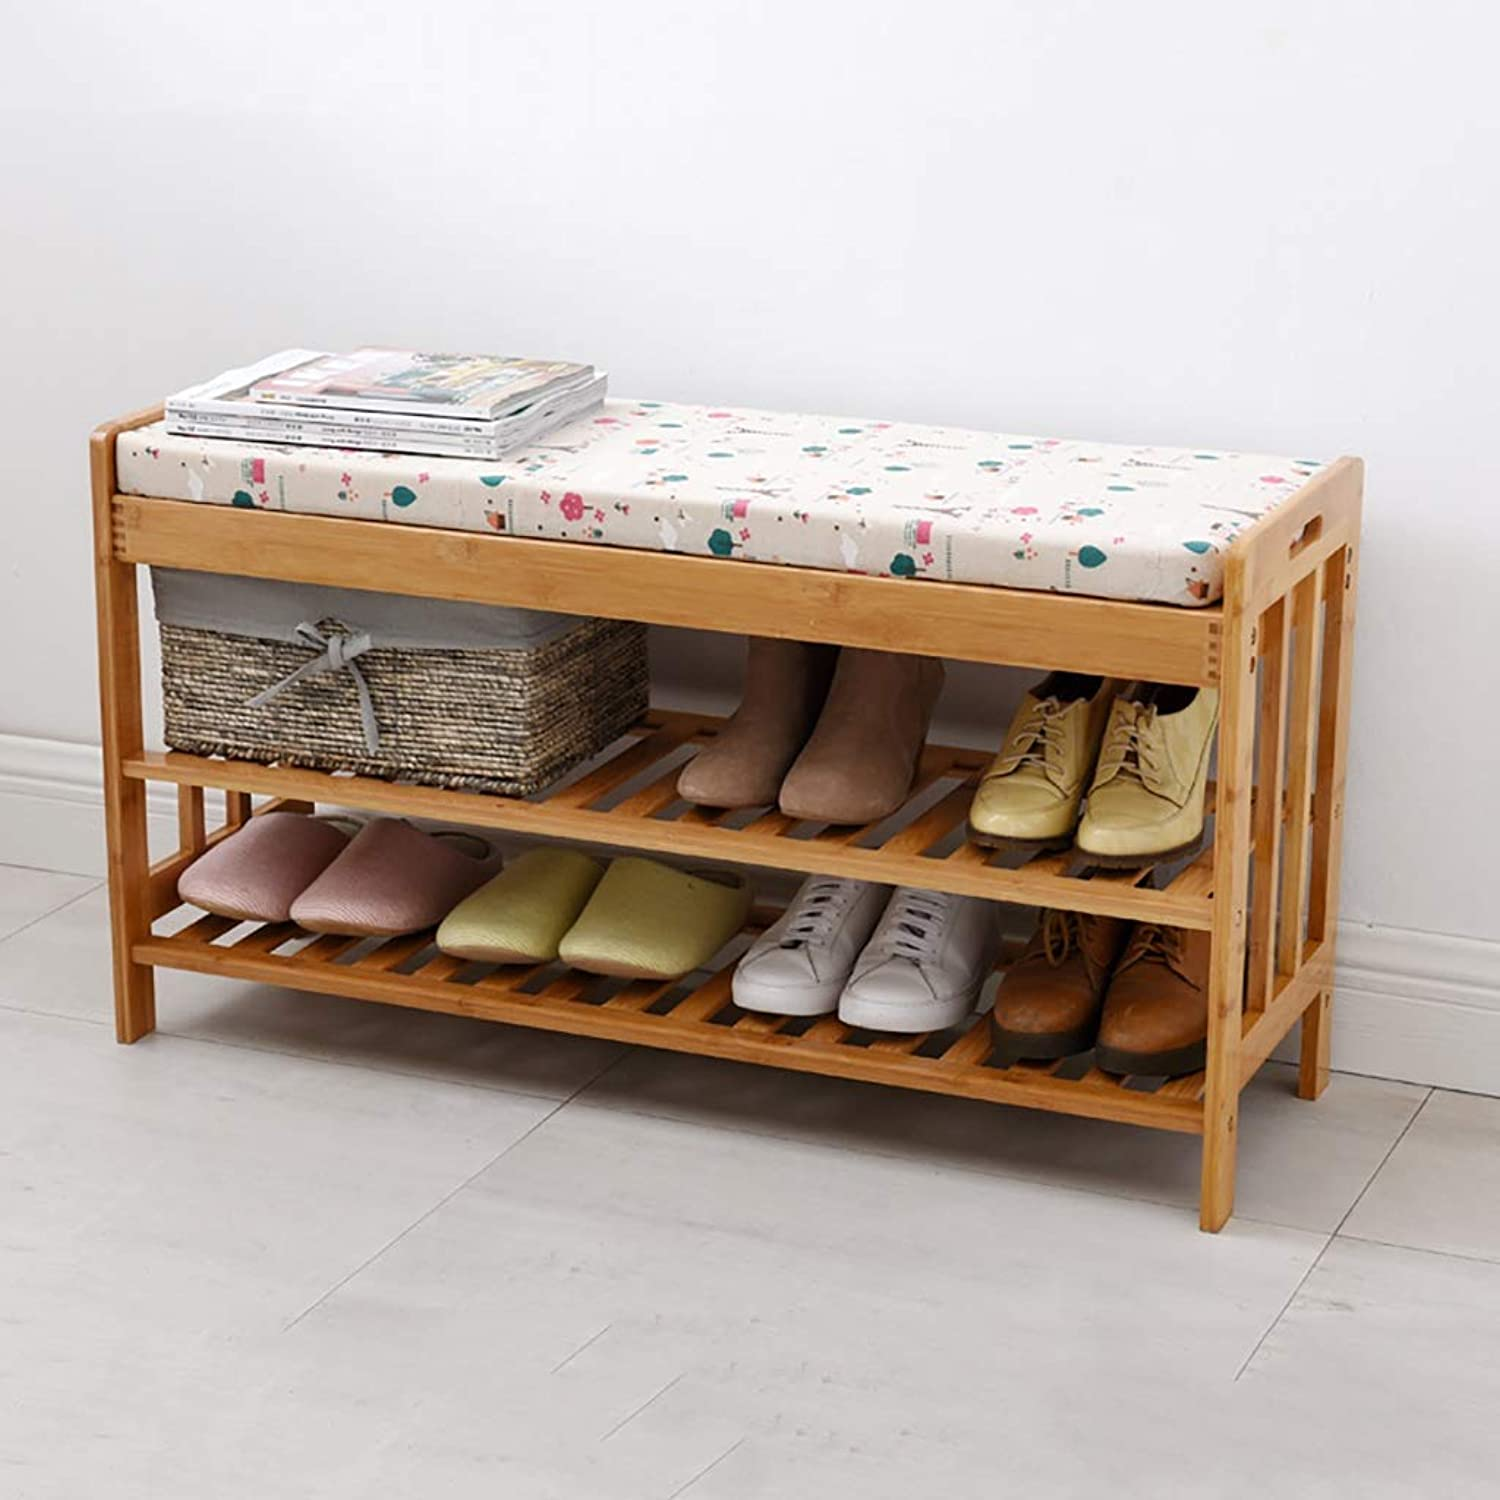 Entrance Door Change shoes Bench Double Layer shoes Rack shoes Stool Storage Stool Frame Sofa Stool shoes Cabinet Wearing a shoes Bench Bamboo (color   B, Size   72  30  50cm)